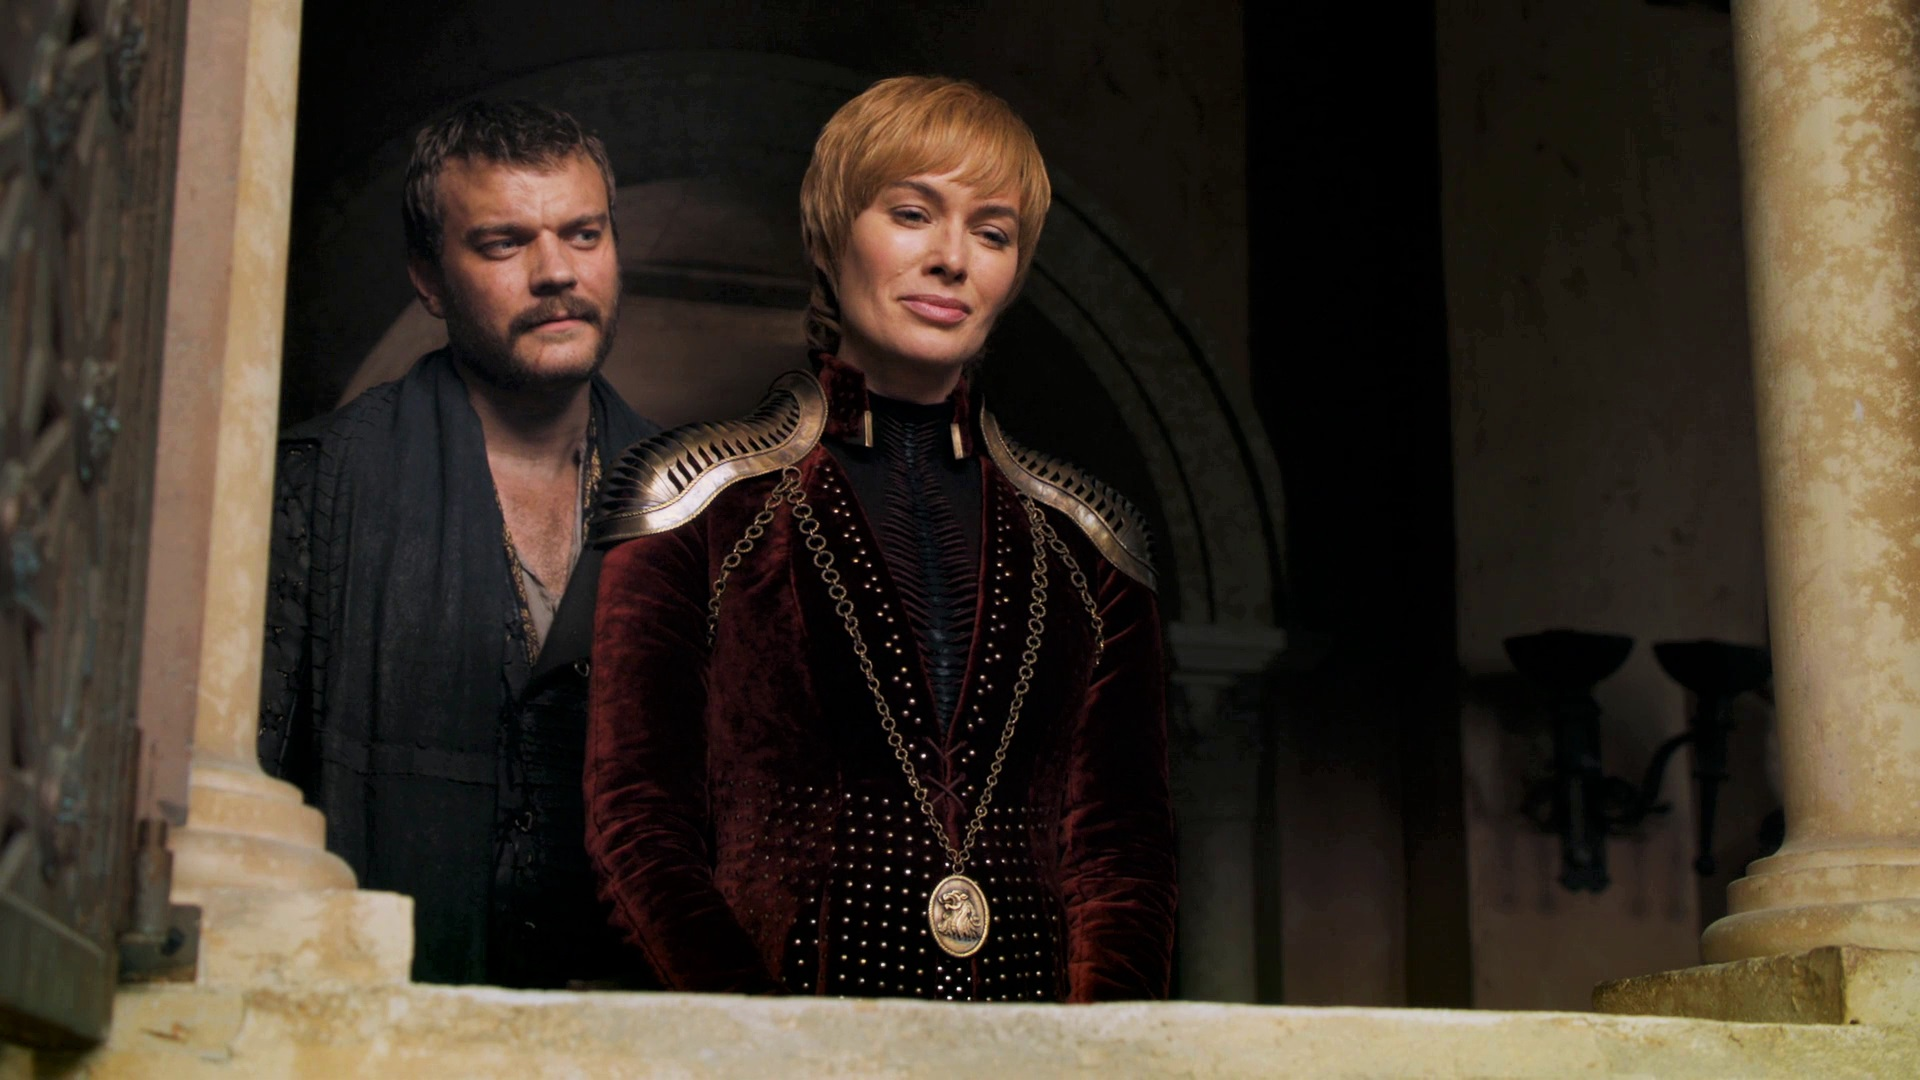 Cersei Lannister Euron Greyjoy Red Keep Season 8 804